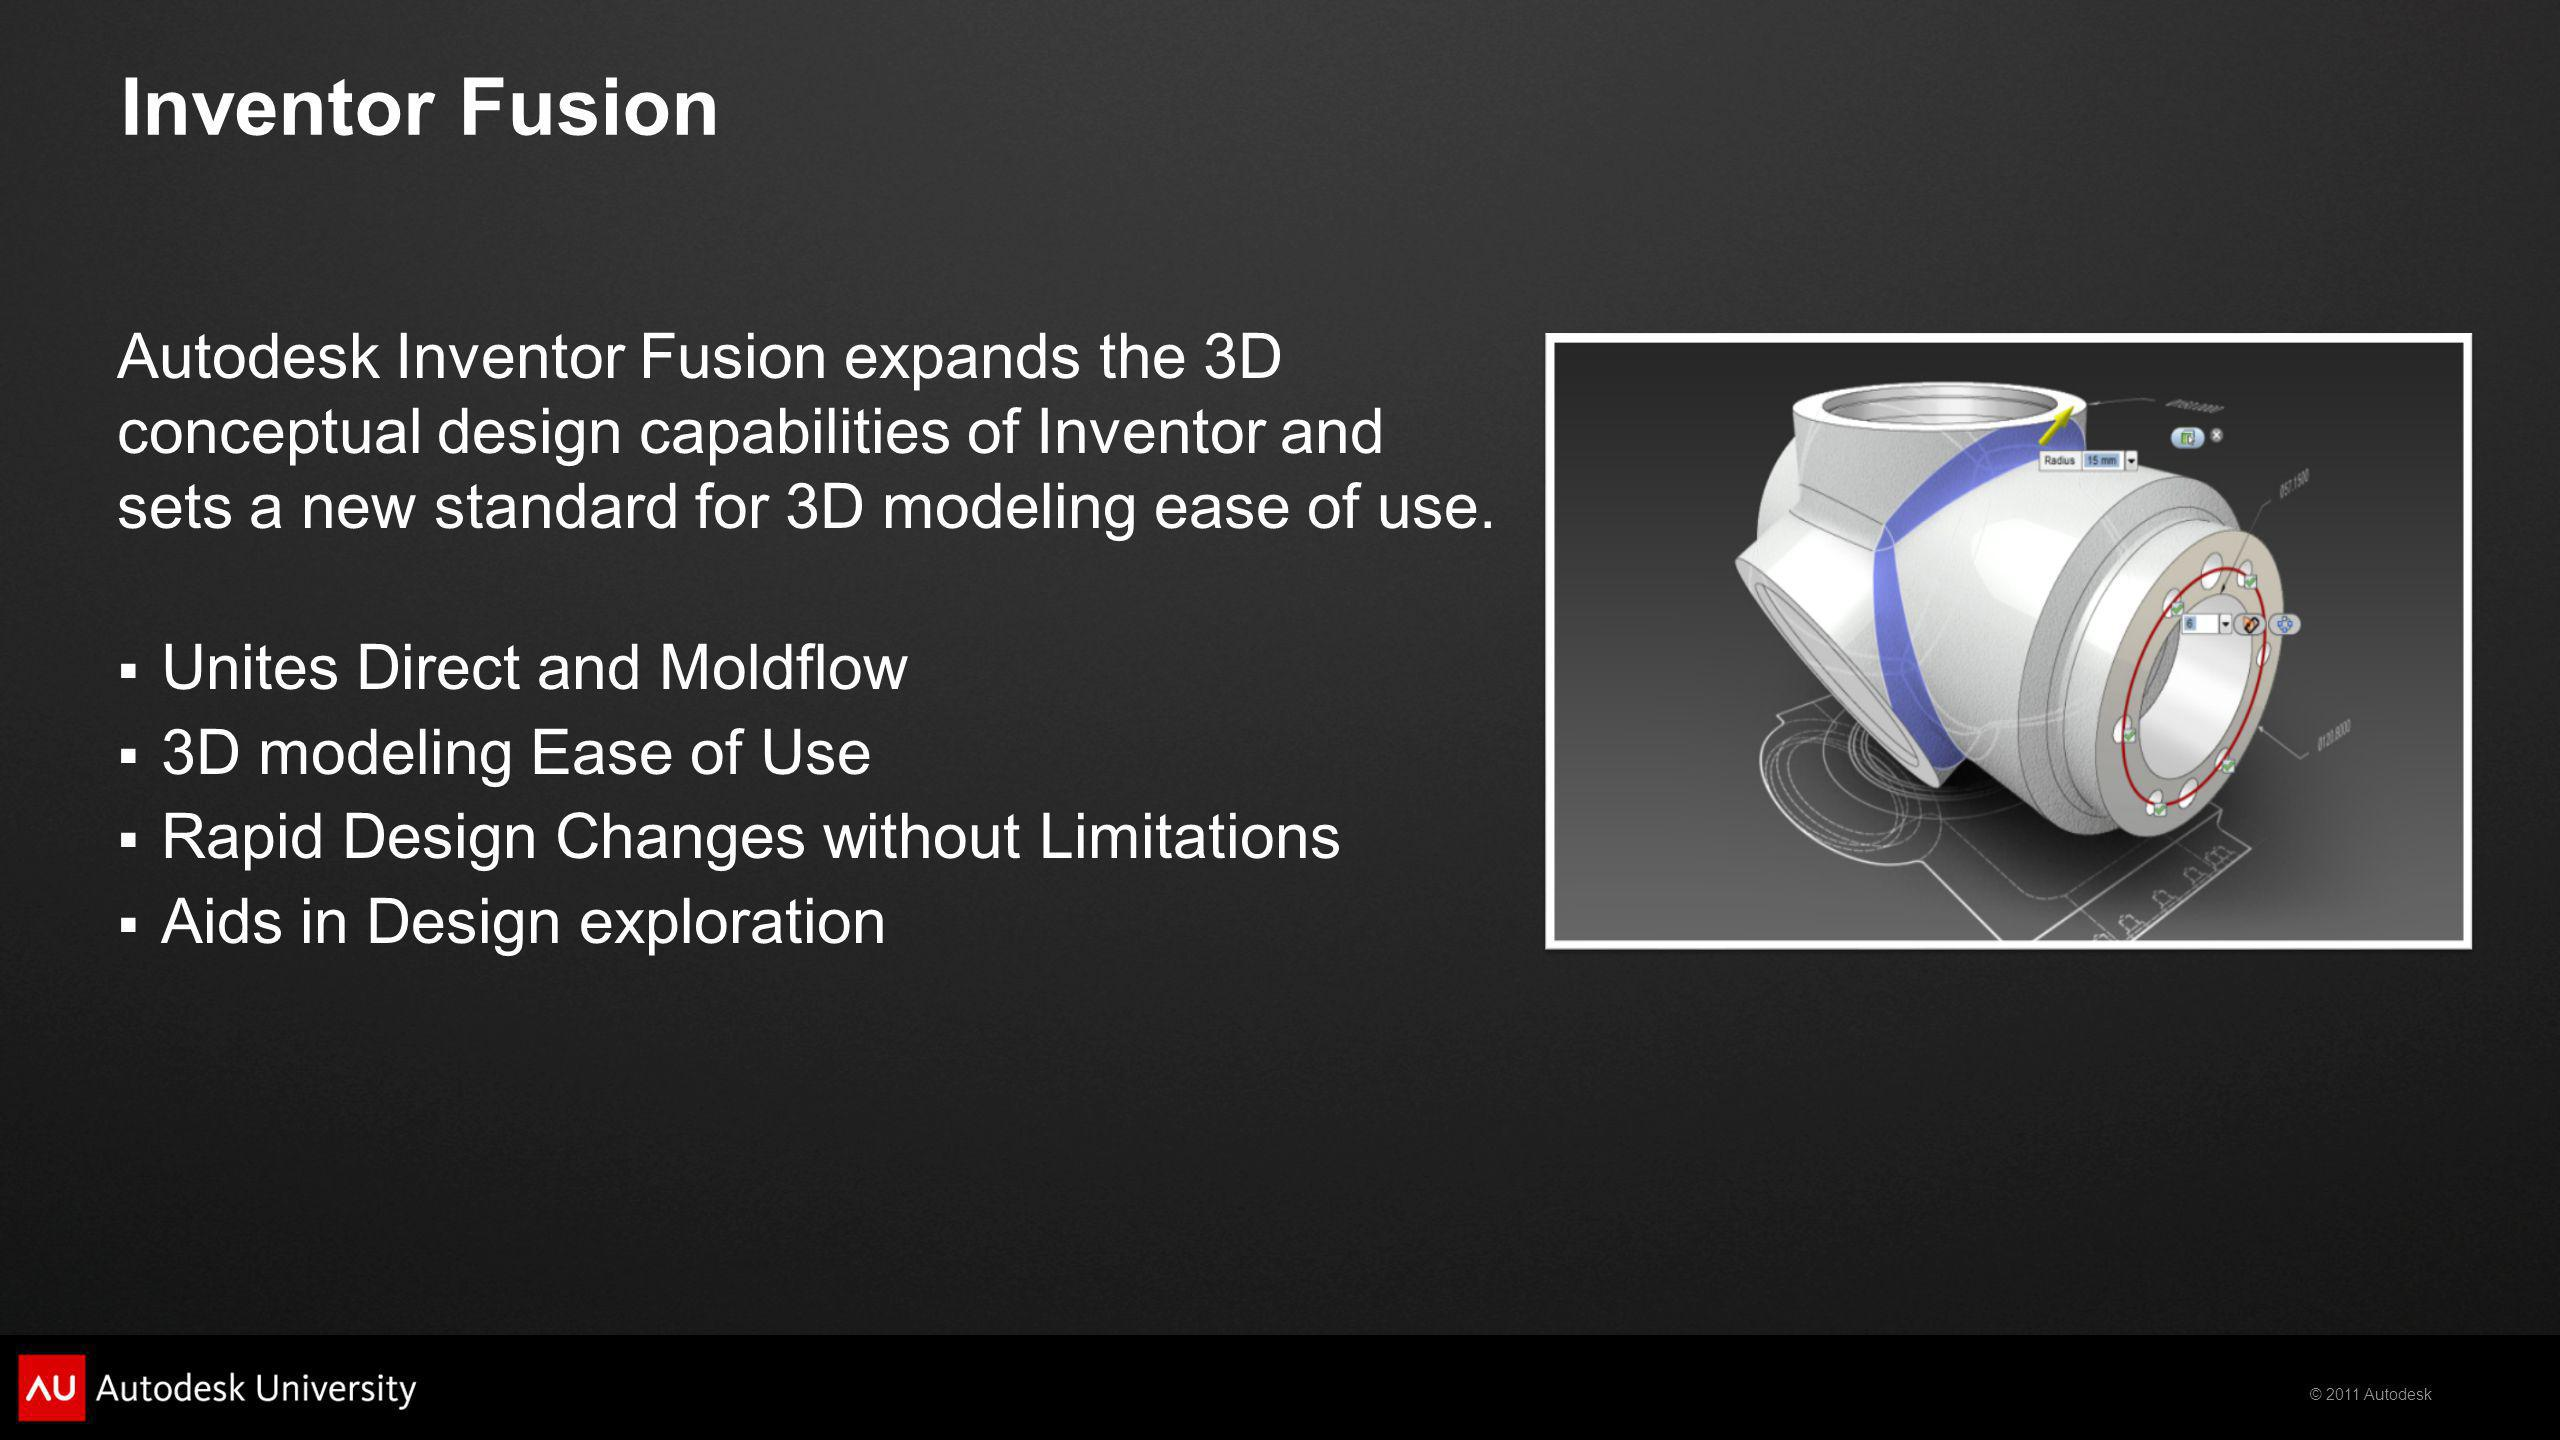 © 2011 Autodesk Inventor Fusion Autodesk Inventor Fusion expands the 3D conceptual design capabilities of Inventor and sets a new standard for 3D modeling ease of use.